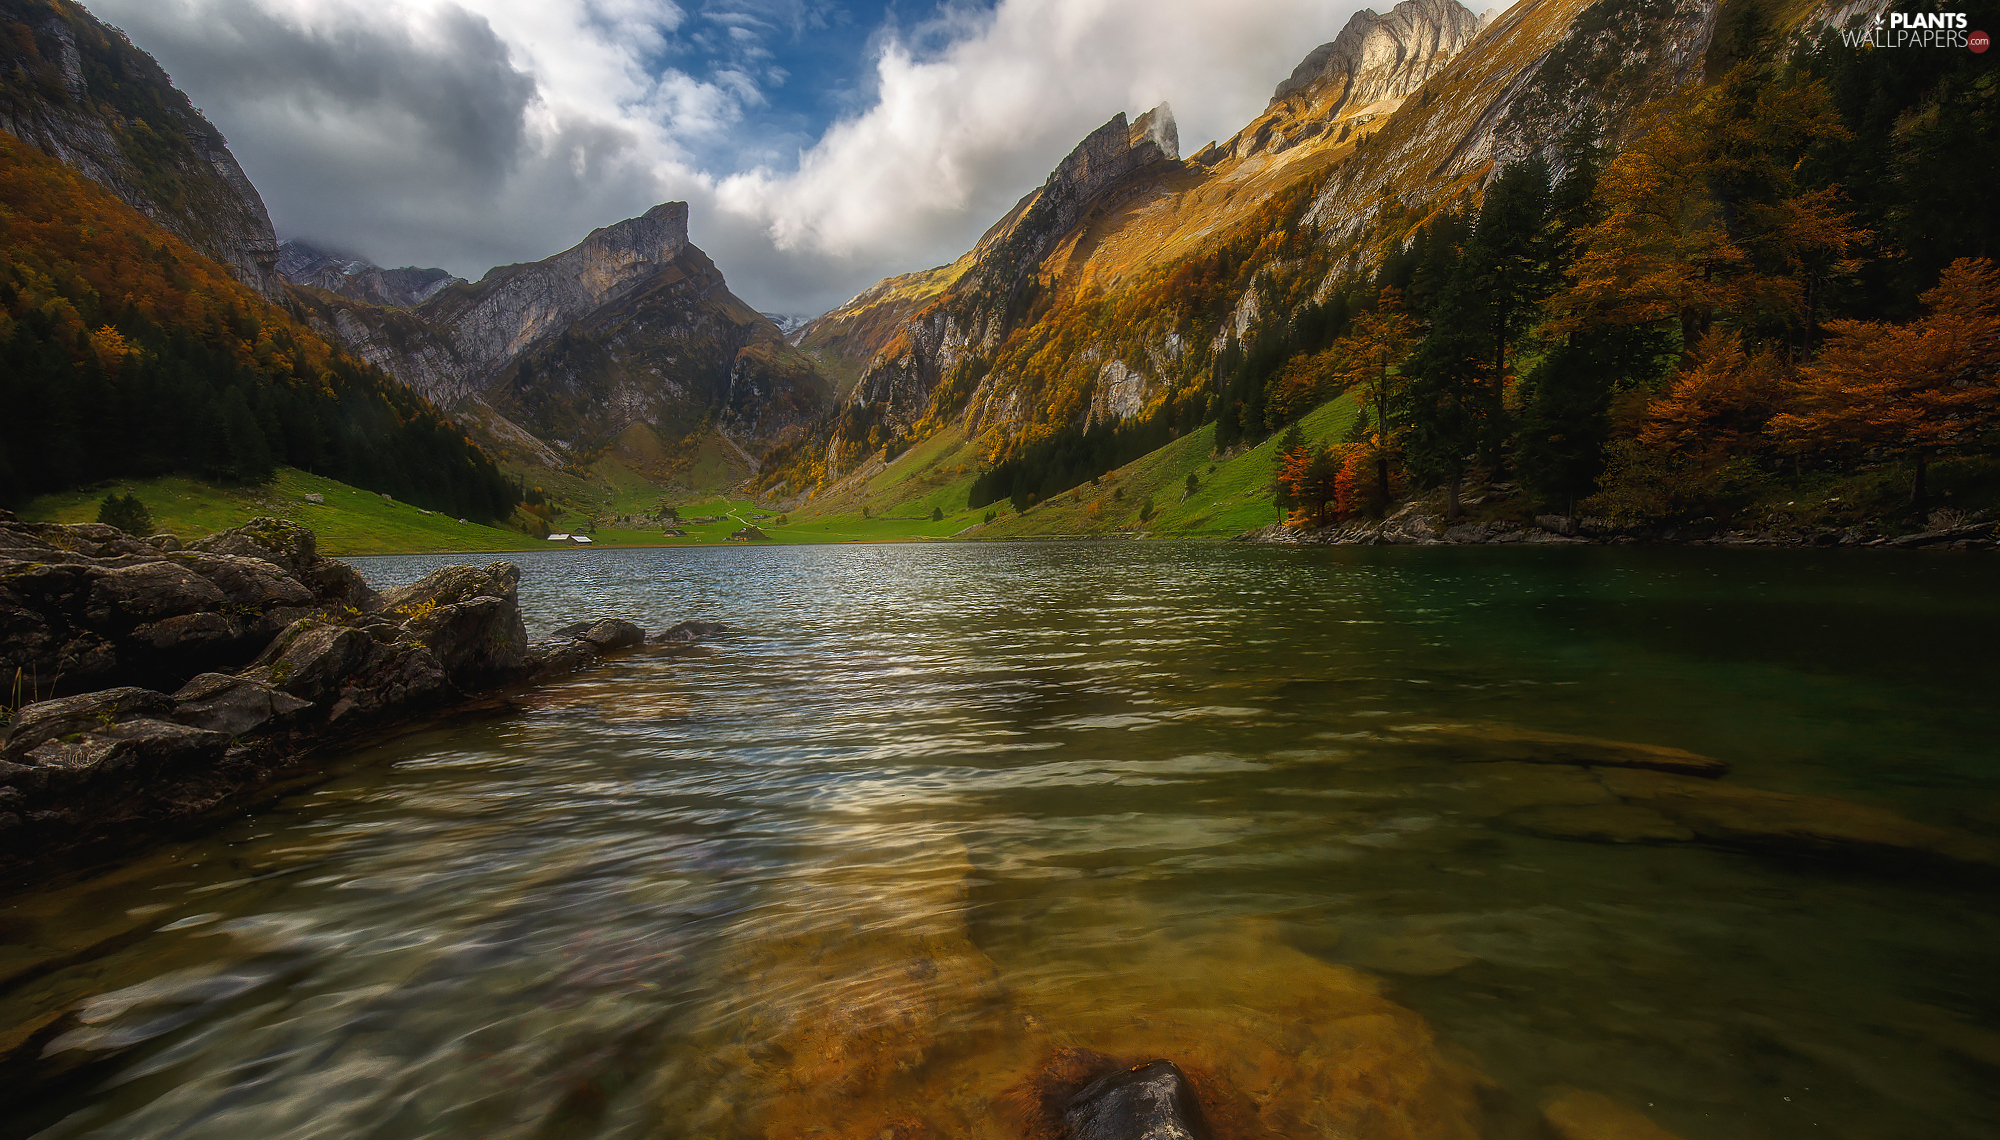 Mountains, autumn, trees, viewes, rocks, lake